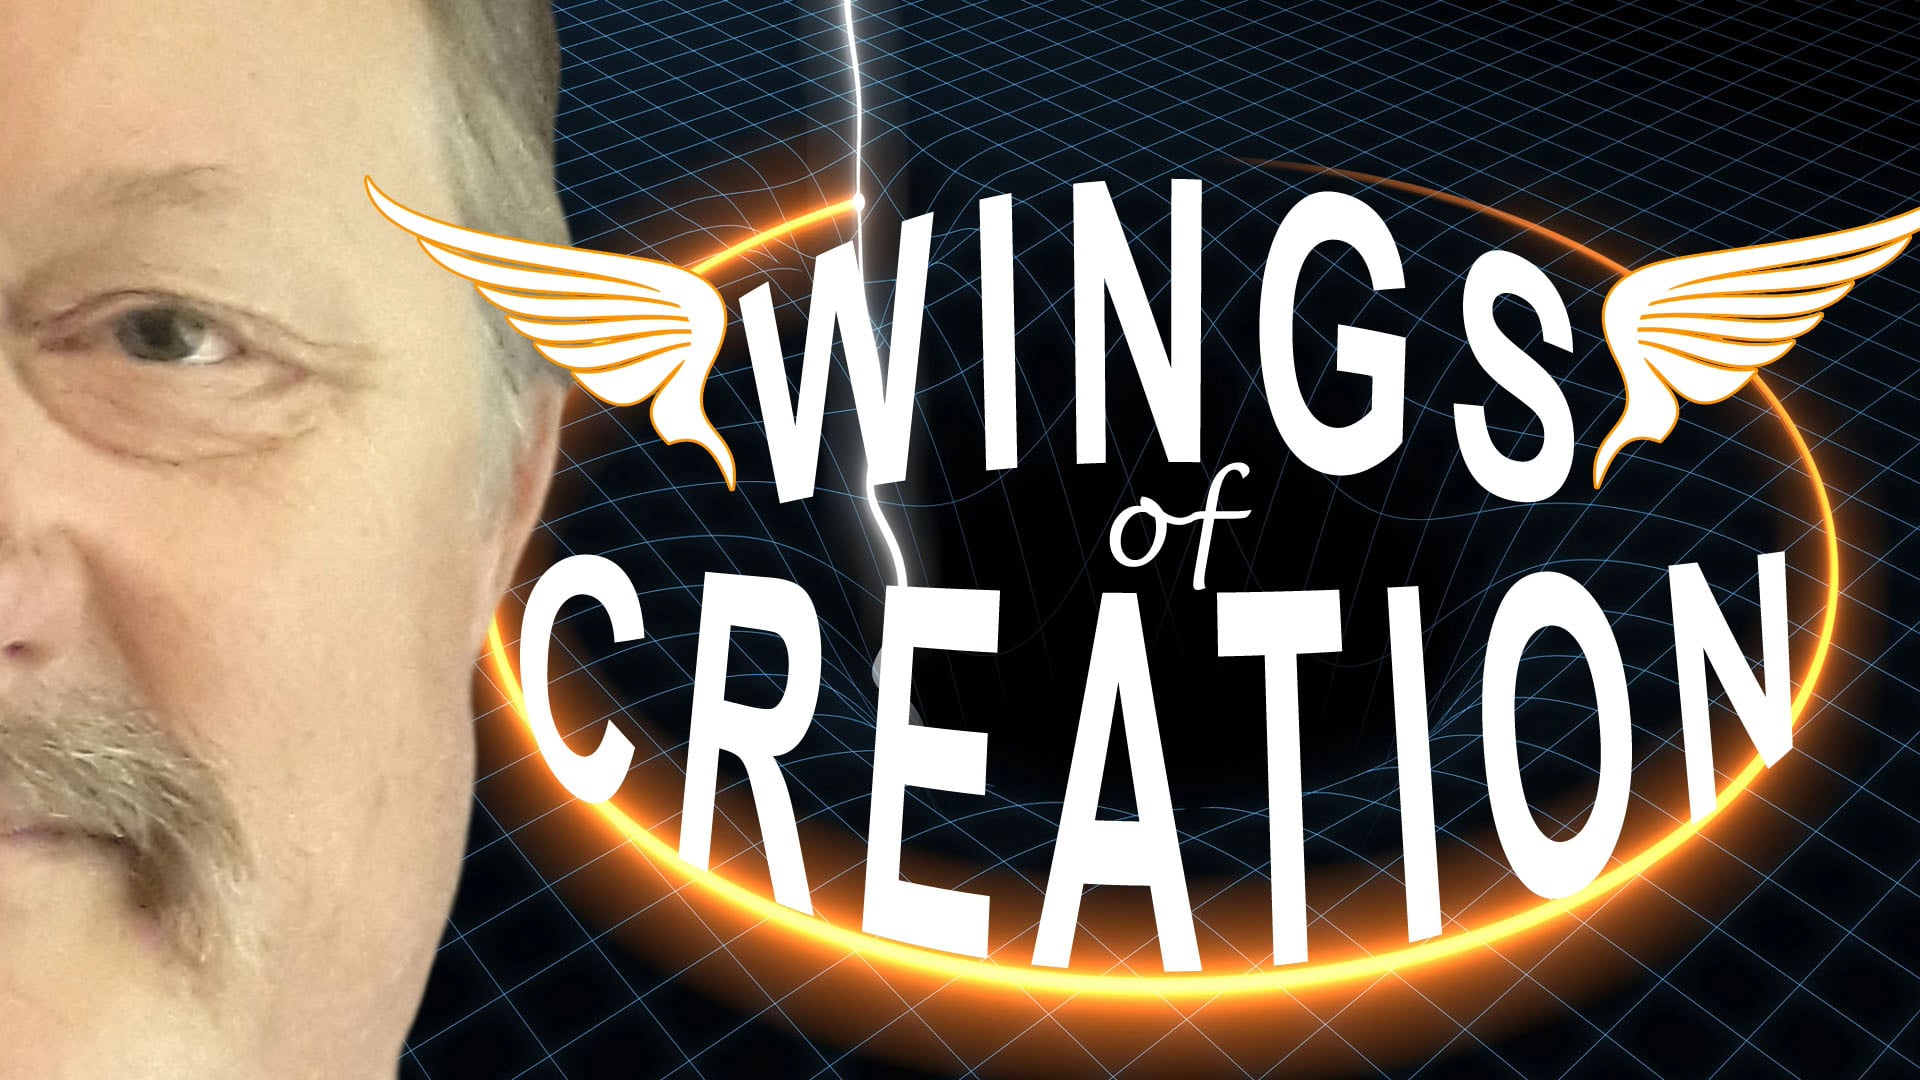 The Wings of Creation: The Age of Awakening